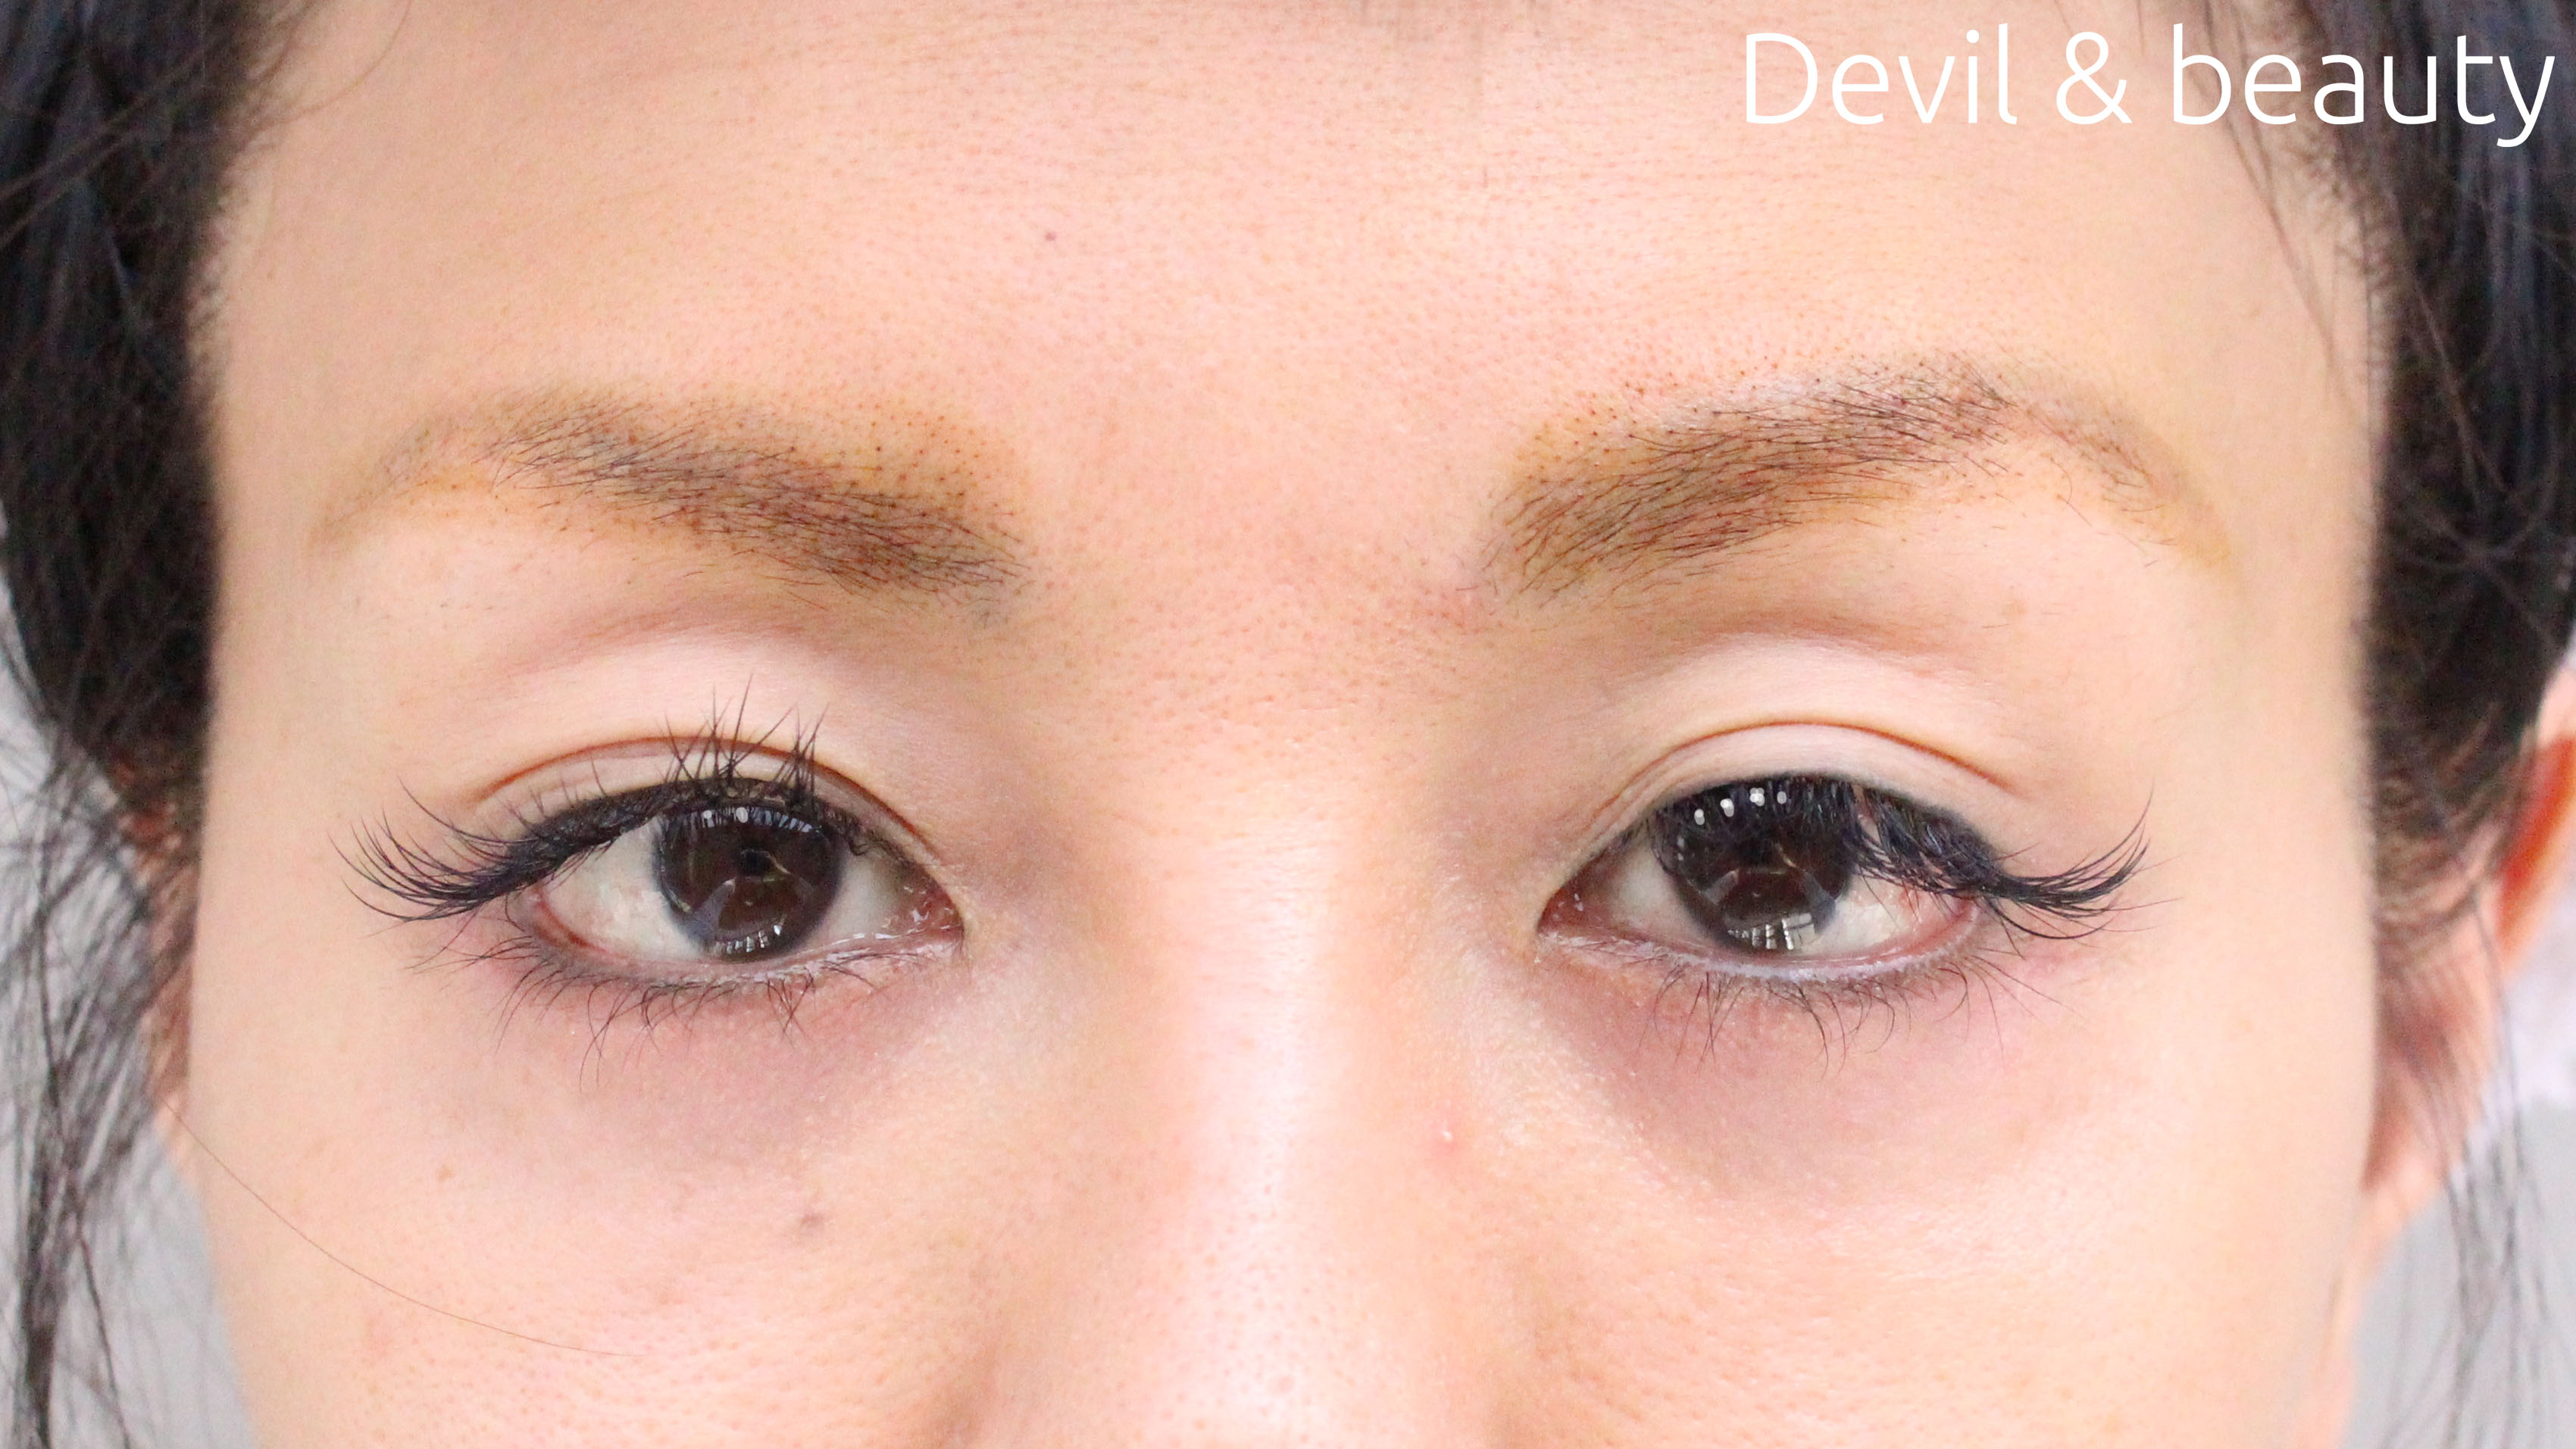 self-tanning-eyebrow-deepdarkbrown-day6 - image